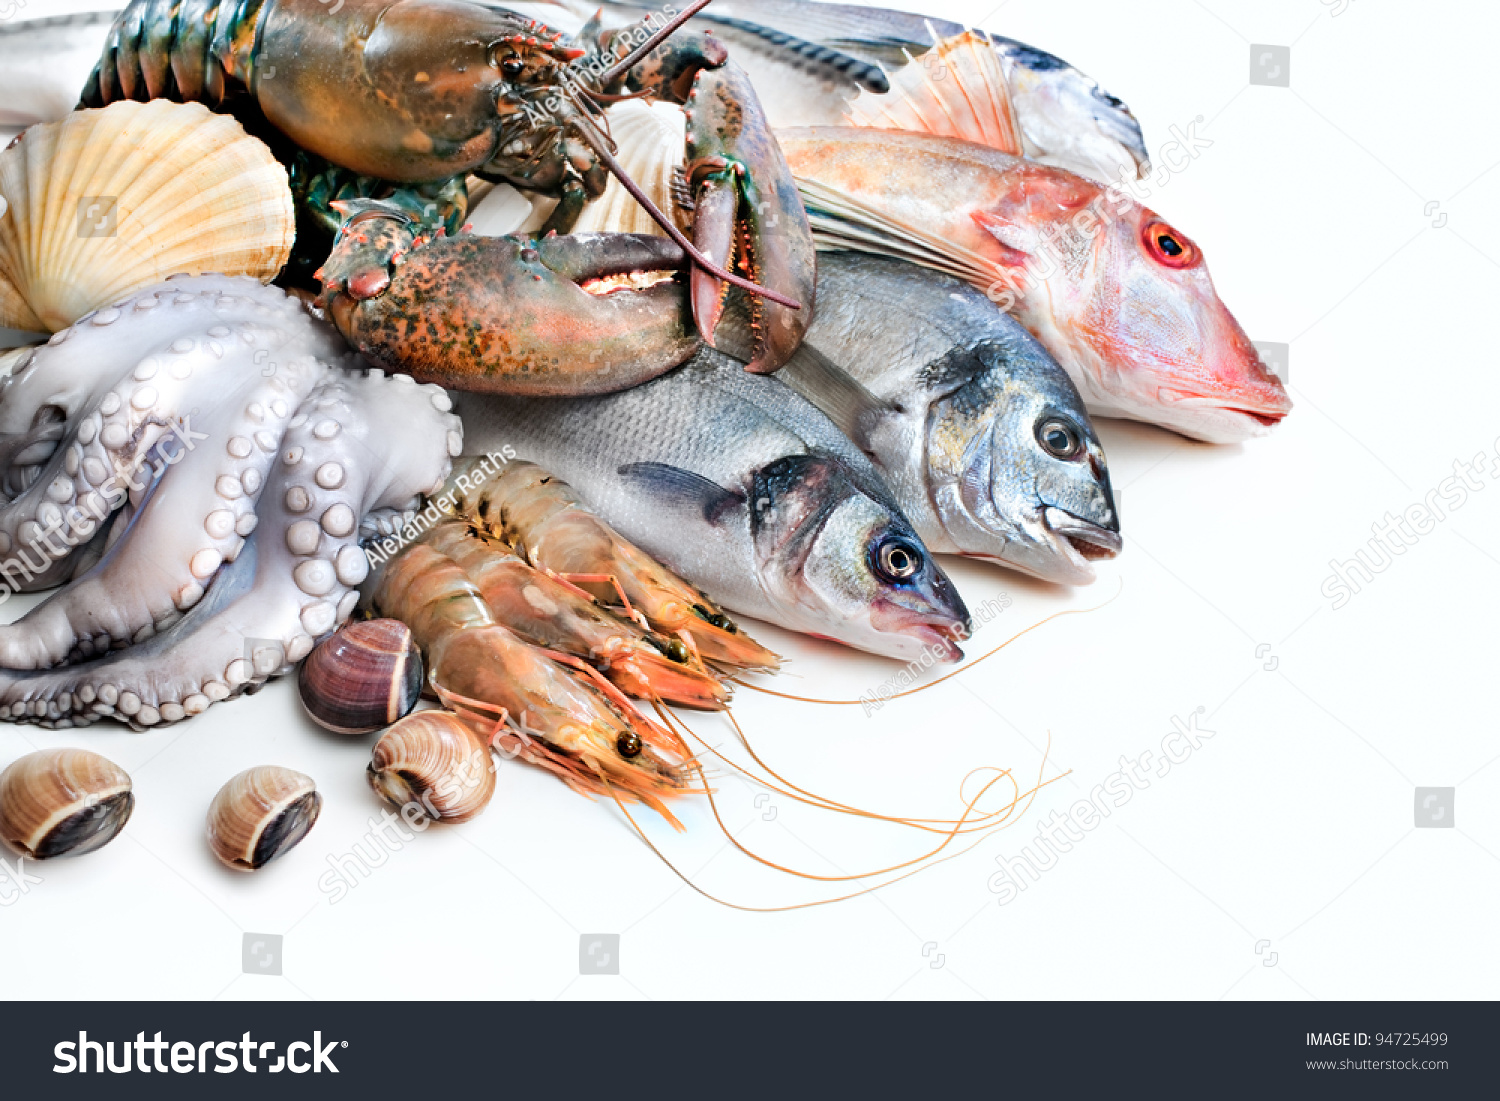 Fresh catch fish other seafood stock photo 94725499 for Fresh fish store near me